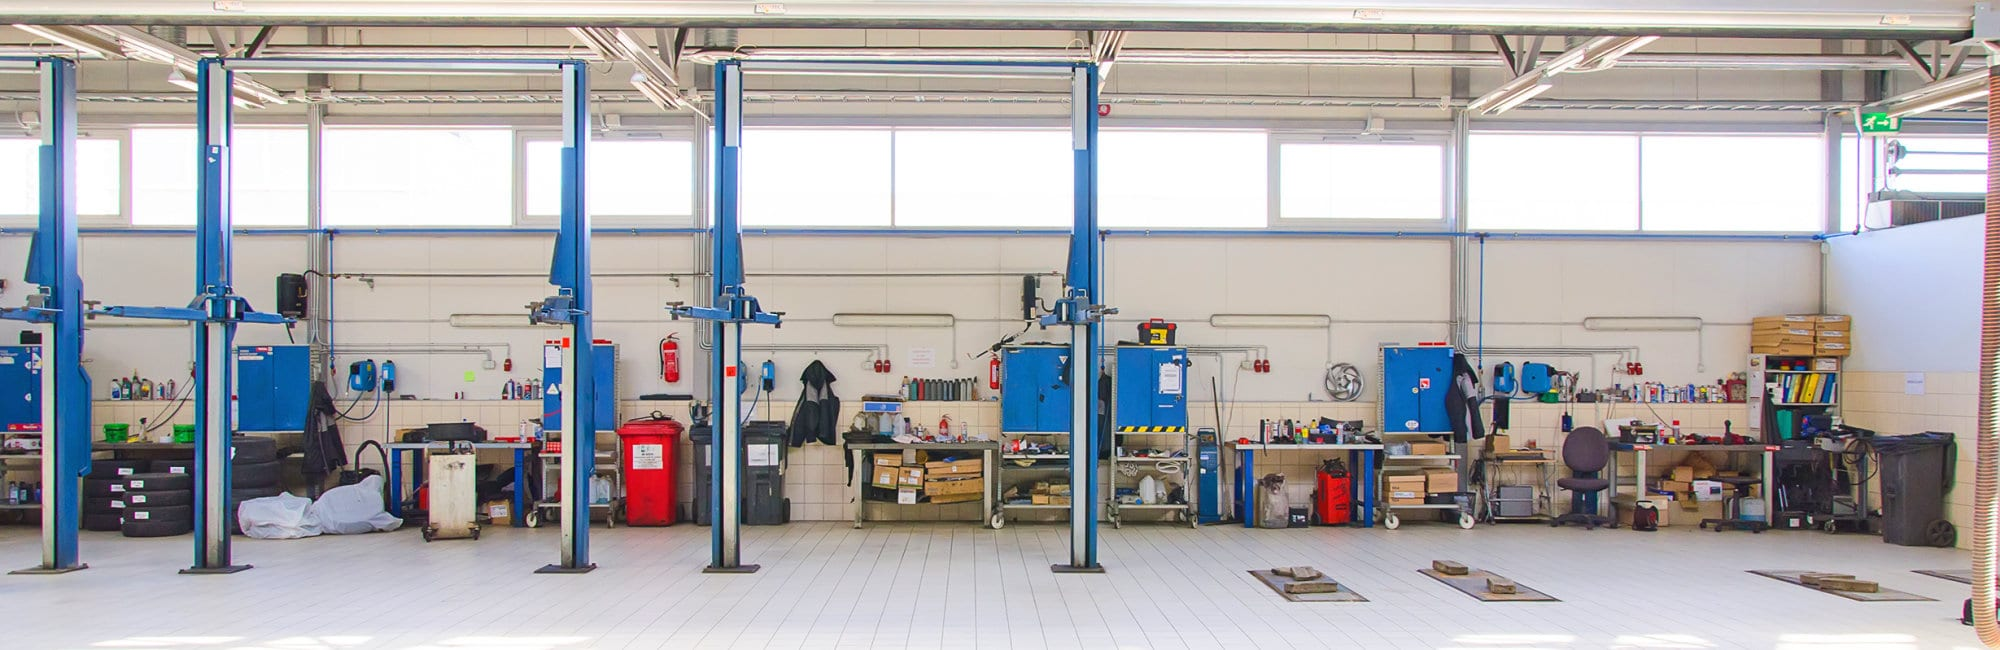 View of automobile repair shop or garage.